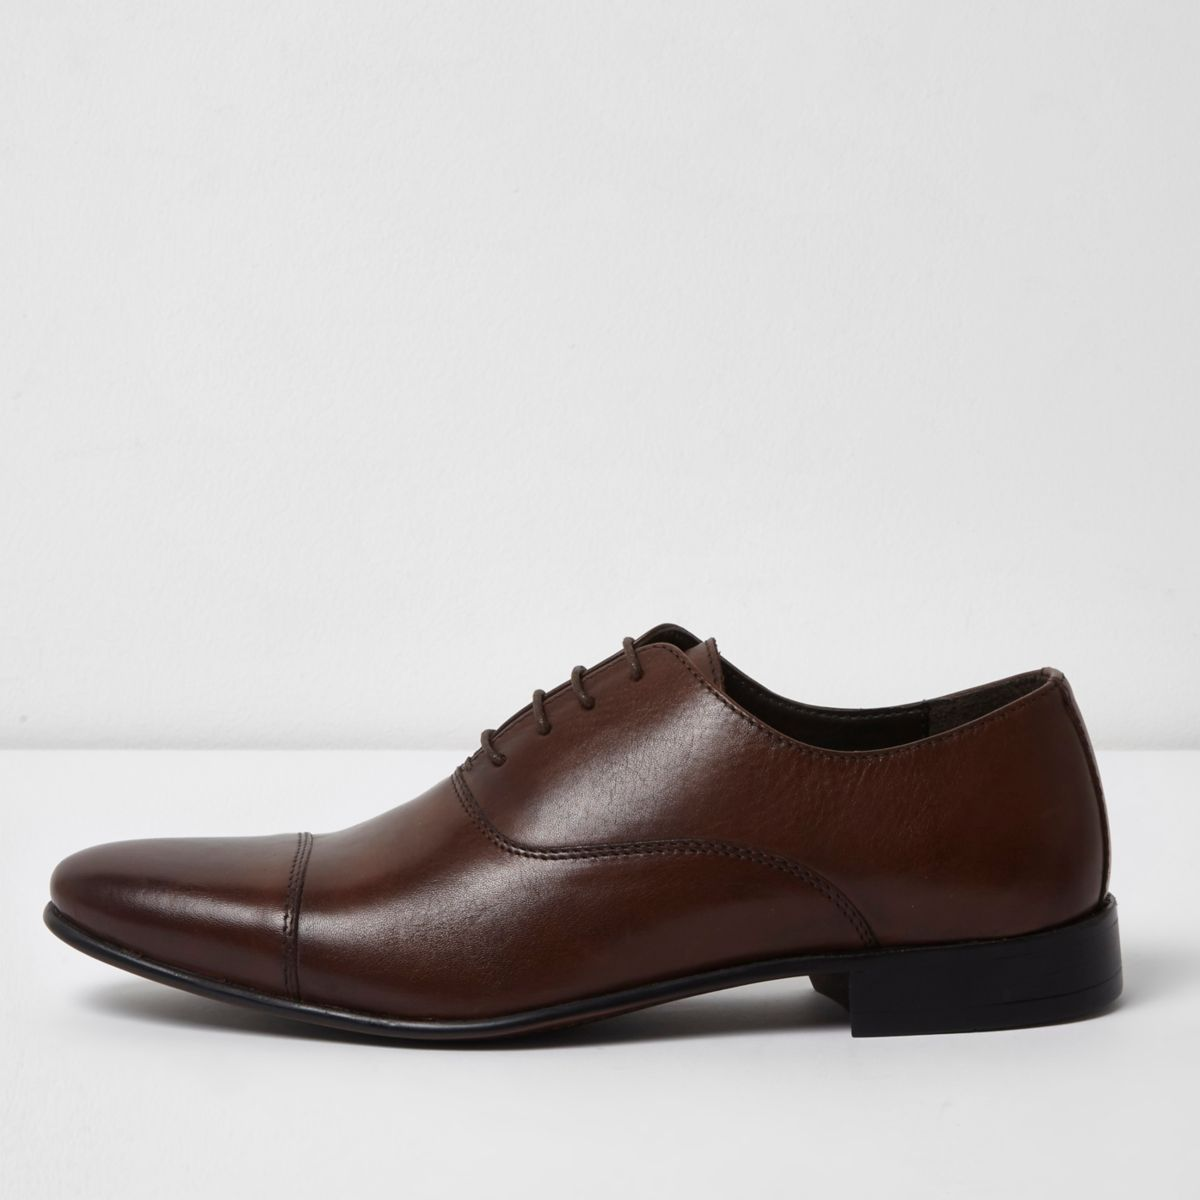 Dark brown leather toe cap Oxford shoes